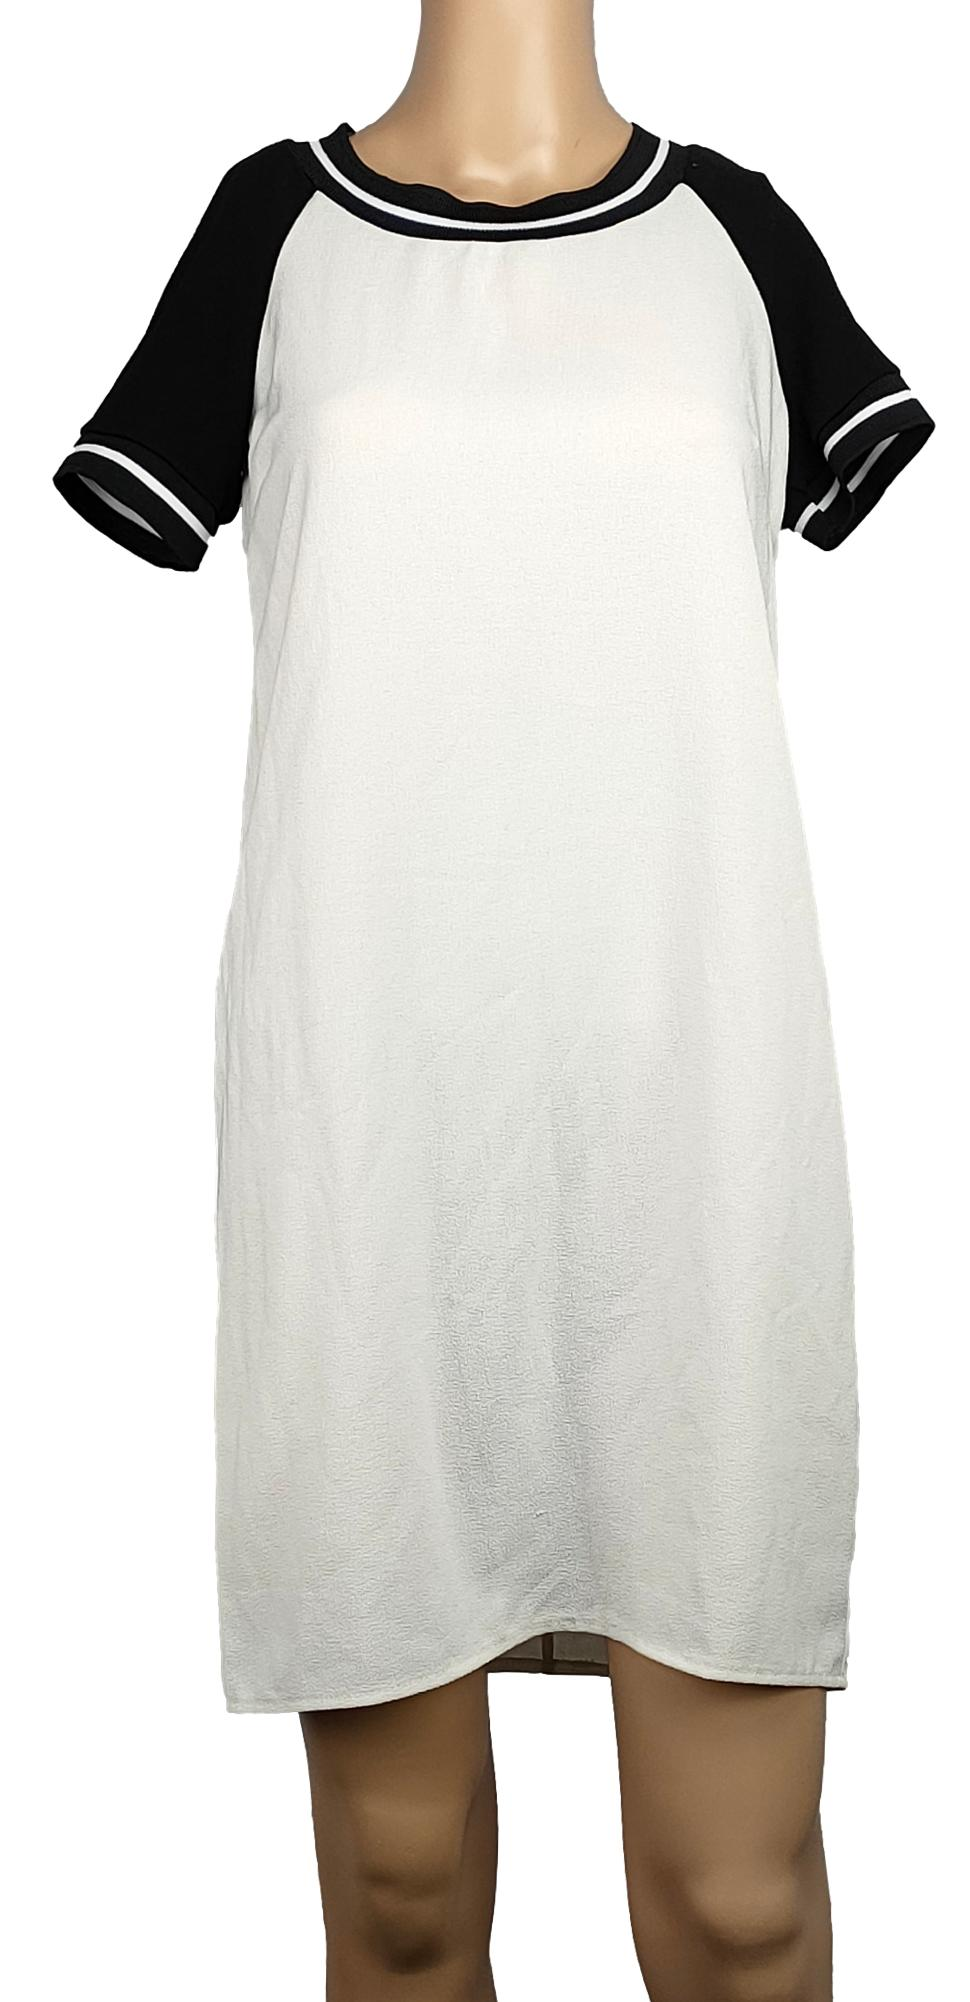 Robe Atmosphere -Taille 36